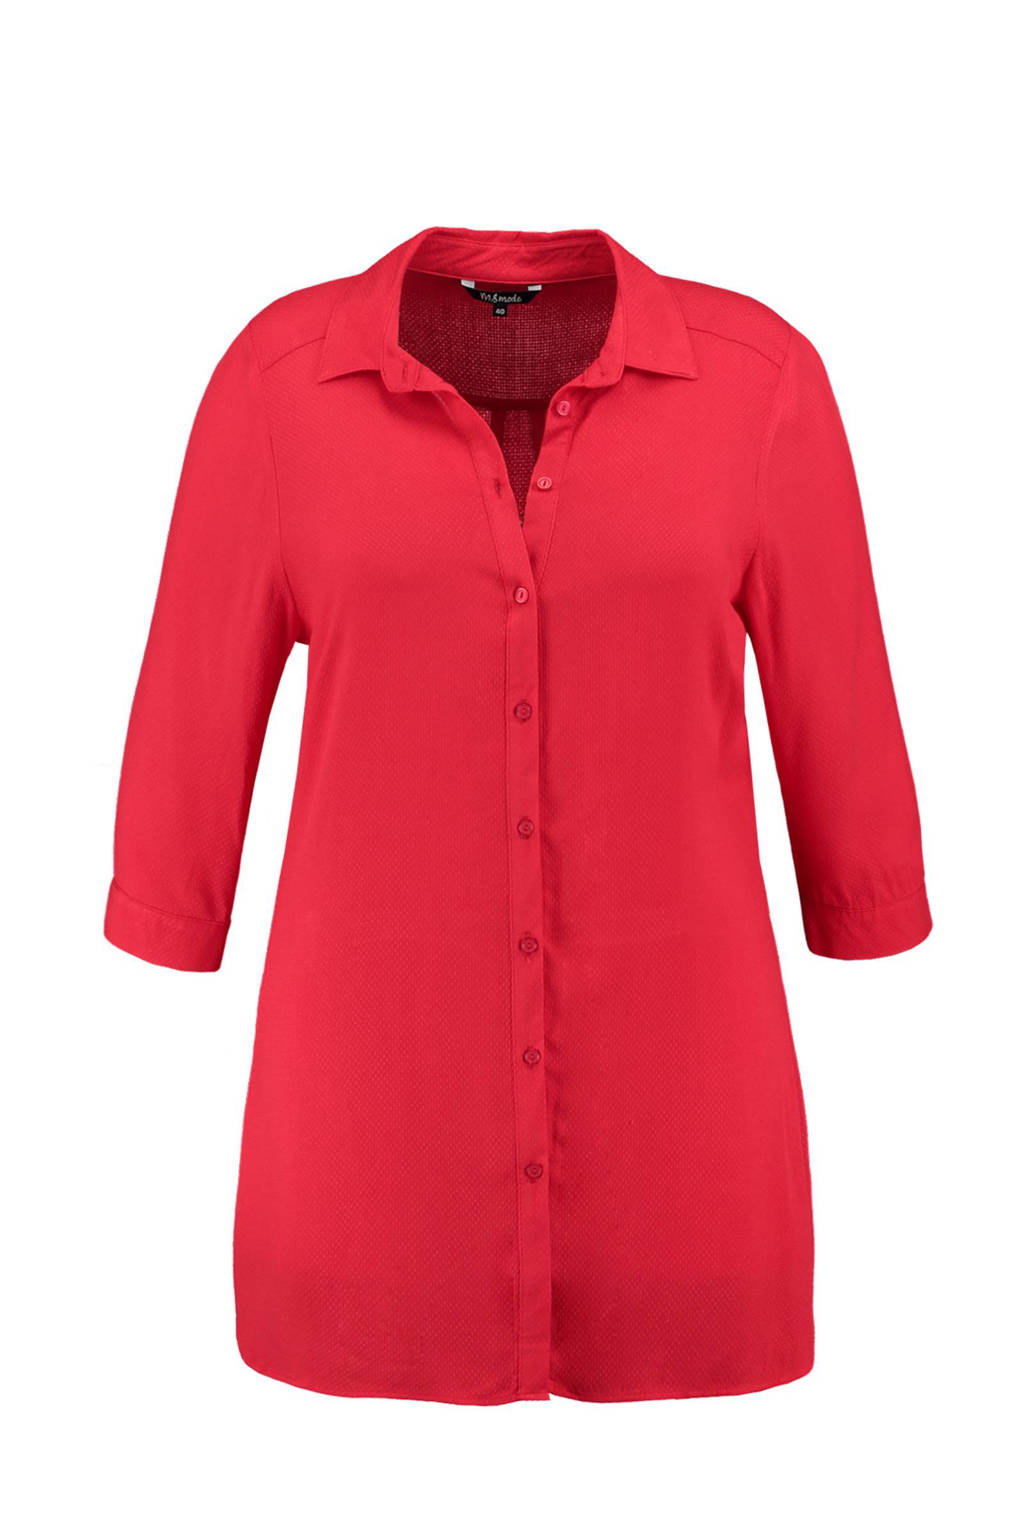 MS Mode blouse, Rood